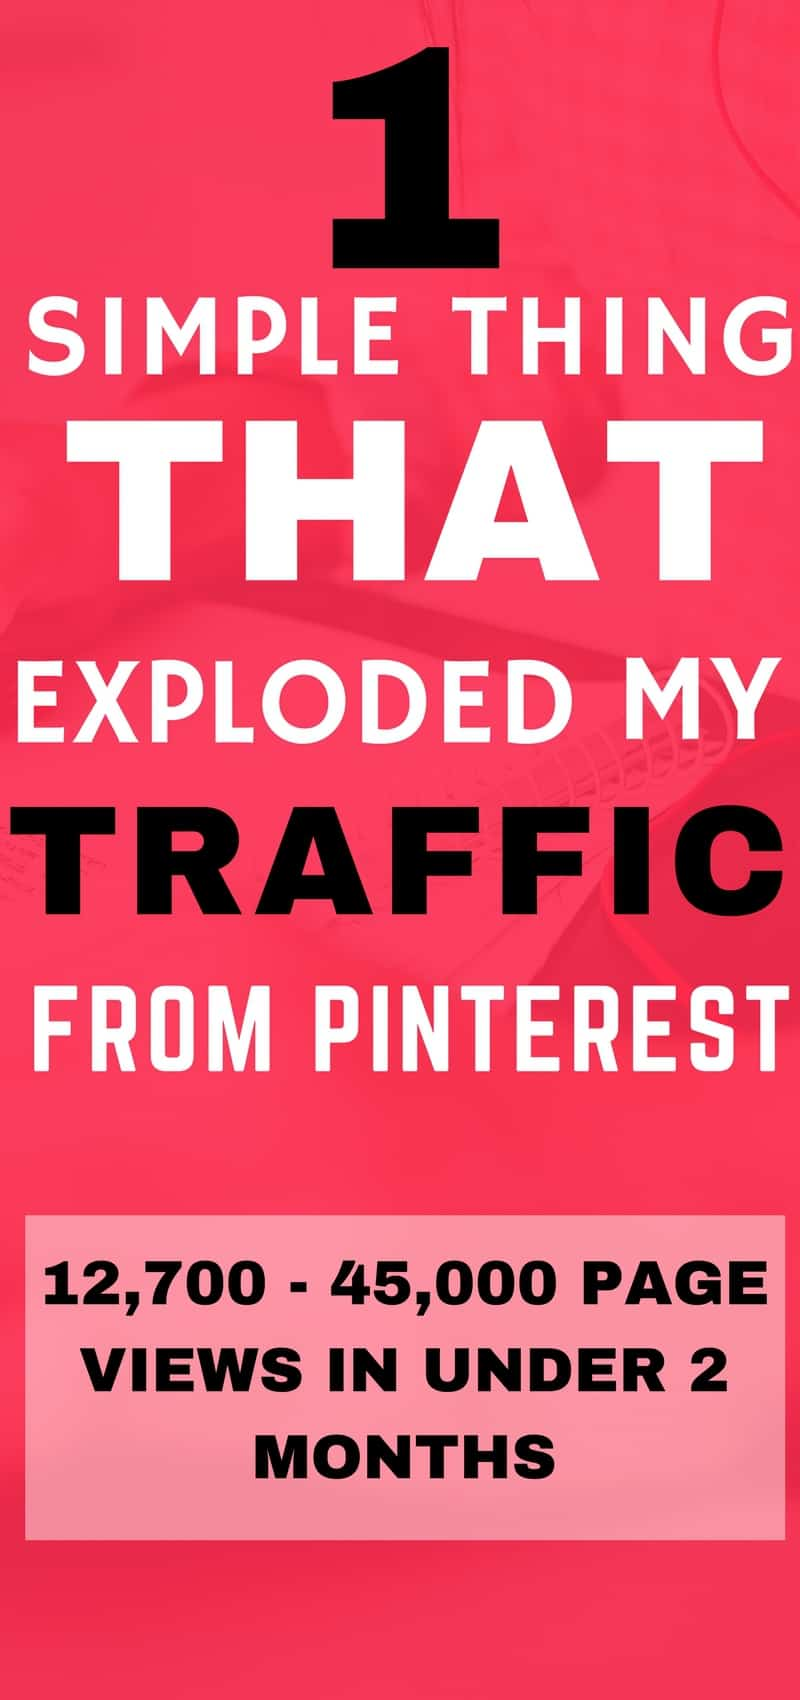 How I exploded my traffic from Pinterest   Pinterest marketing tips  Blogging for beginners   Grow your blog and traffic!